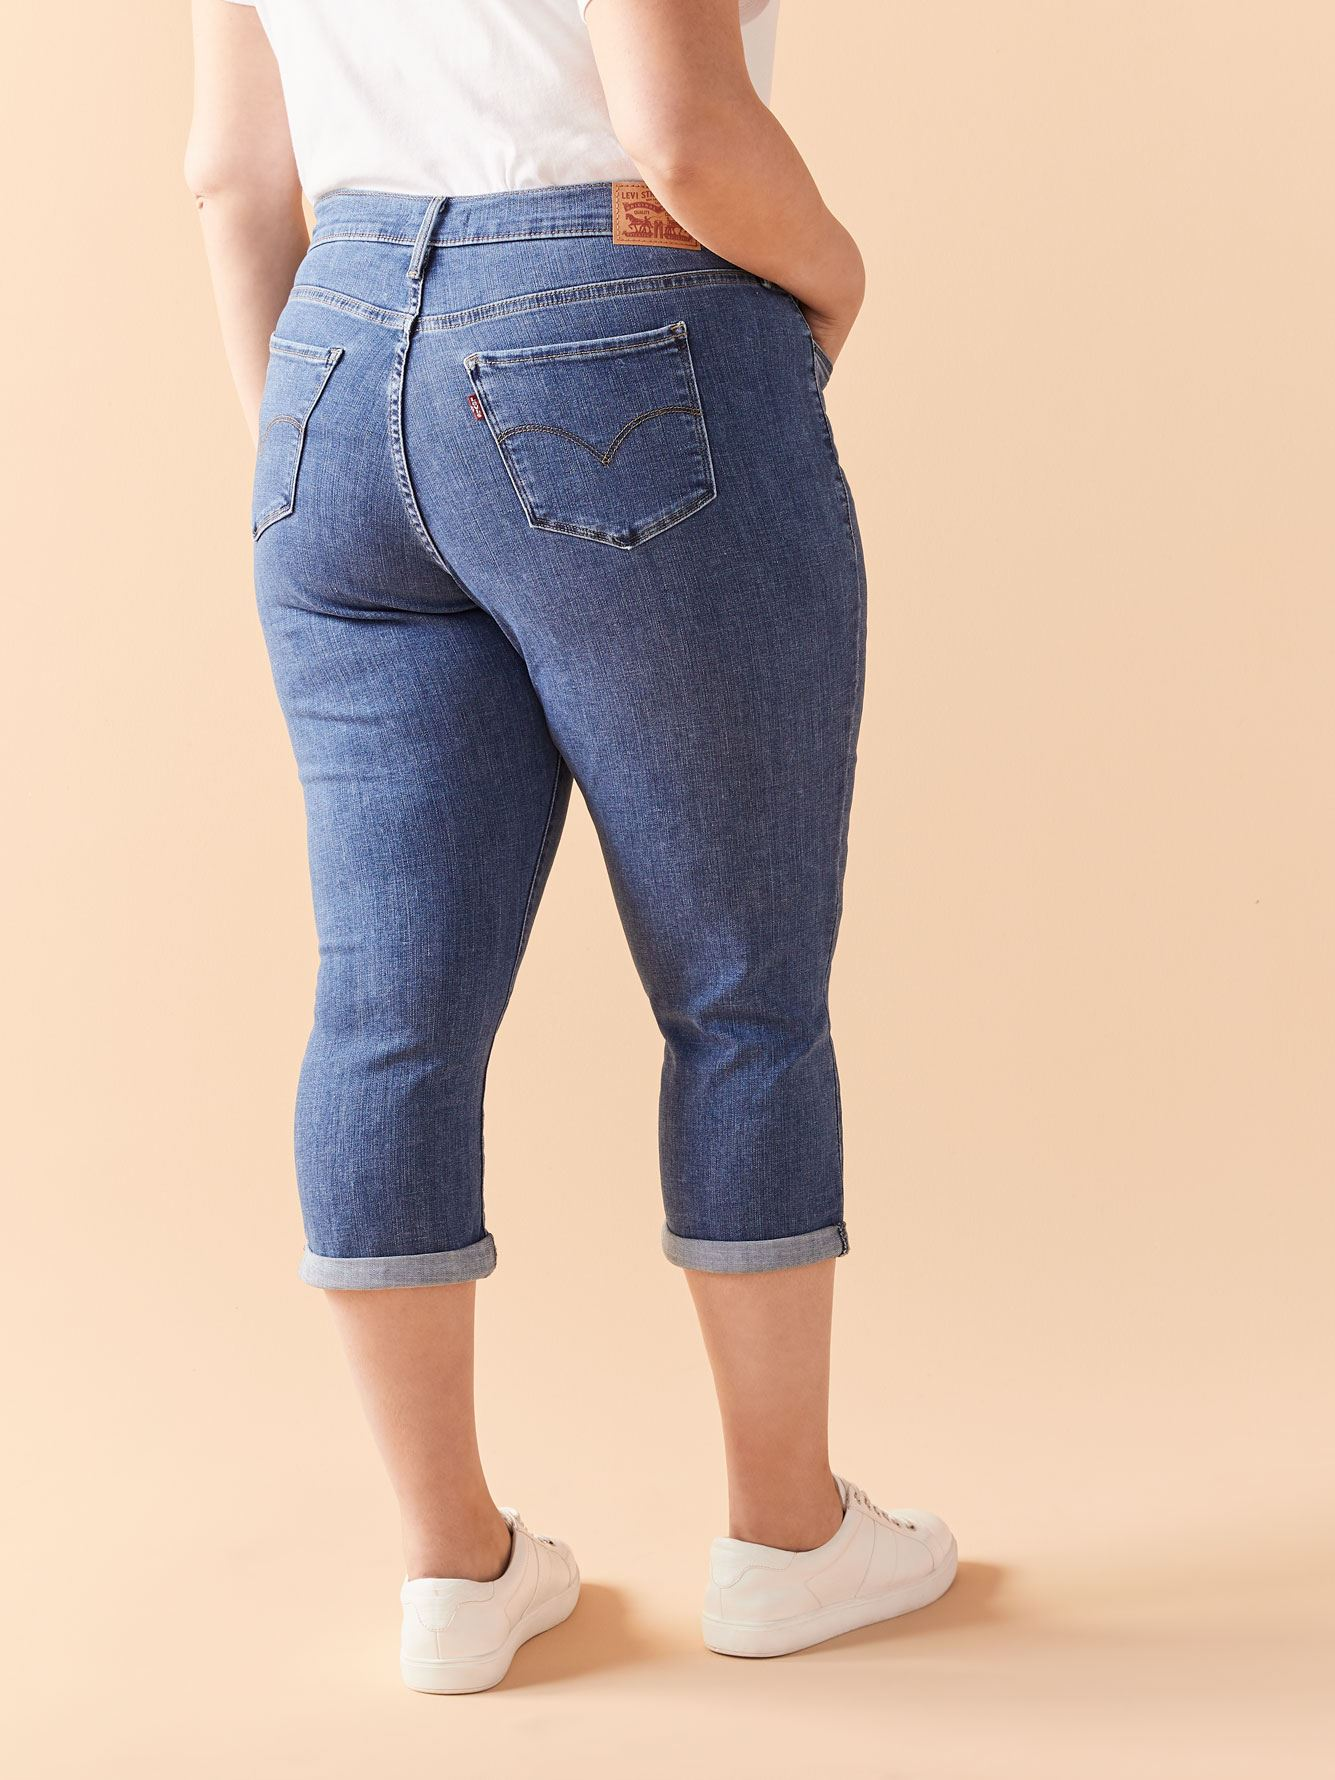 Stretchy 311 Shaping Jean Capri - Levi's